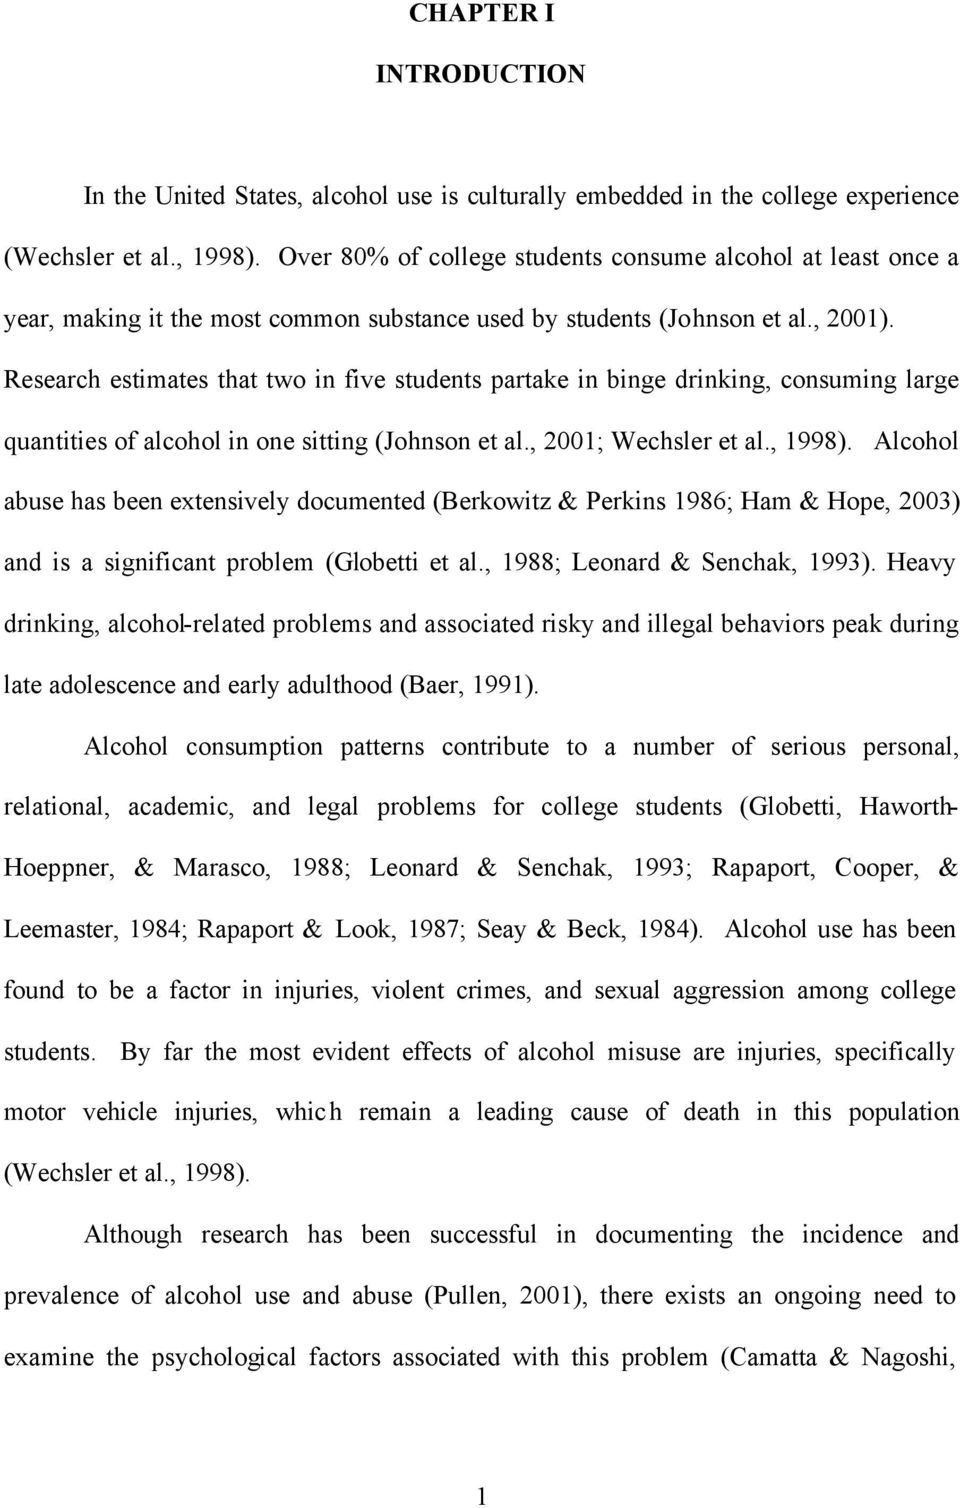 Research estimates that two in five students partake in binge drinking, consuming large quantities of alcohol in one sitting (Johnson et al., 2001; Wechsler et al., 1998).